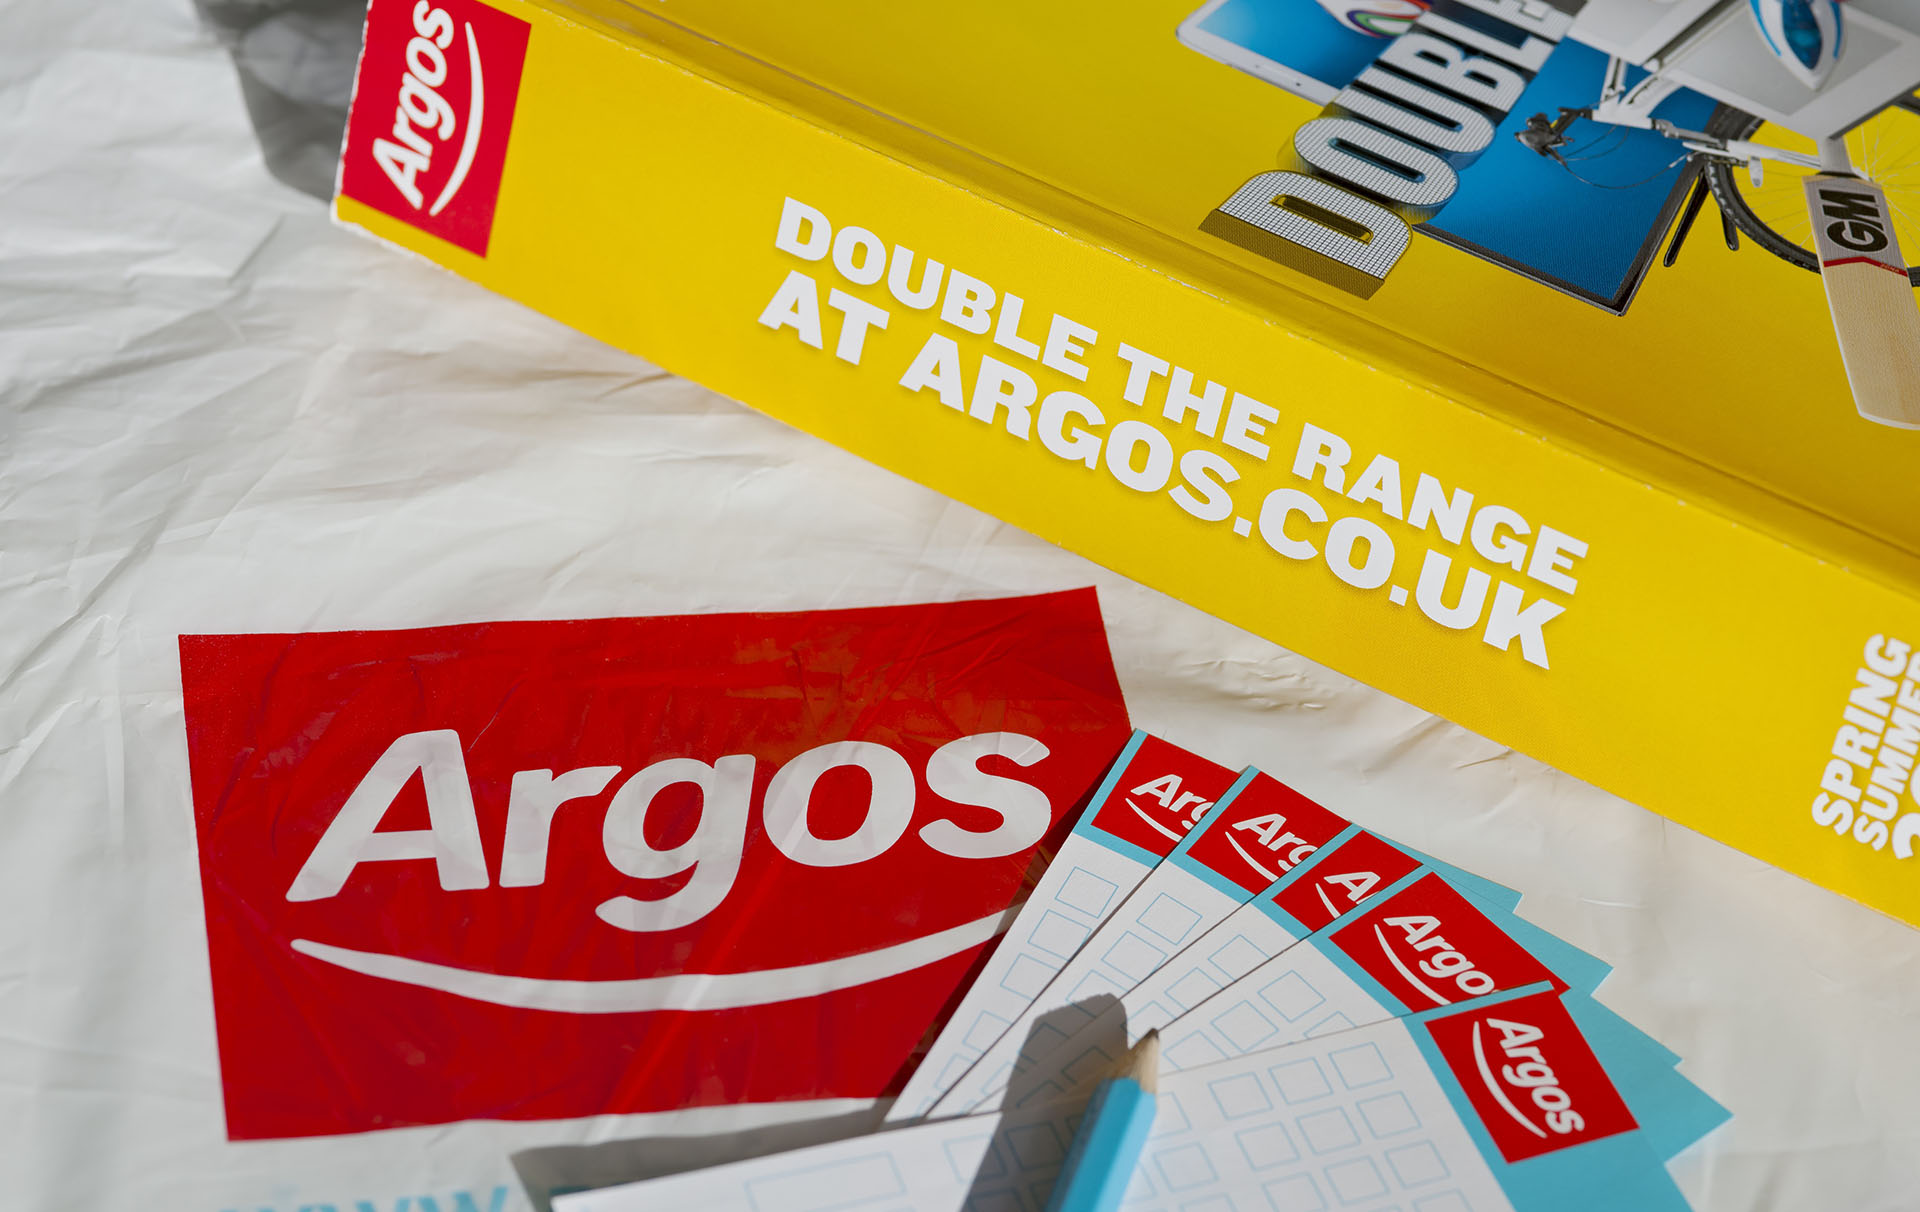 Argos Launches 3 For 2 Offer On Thousands Of Childrens Toys